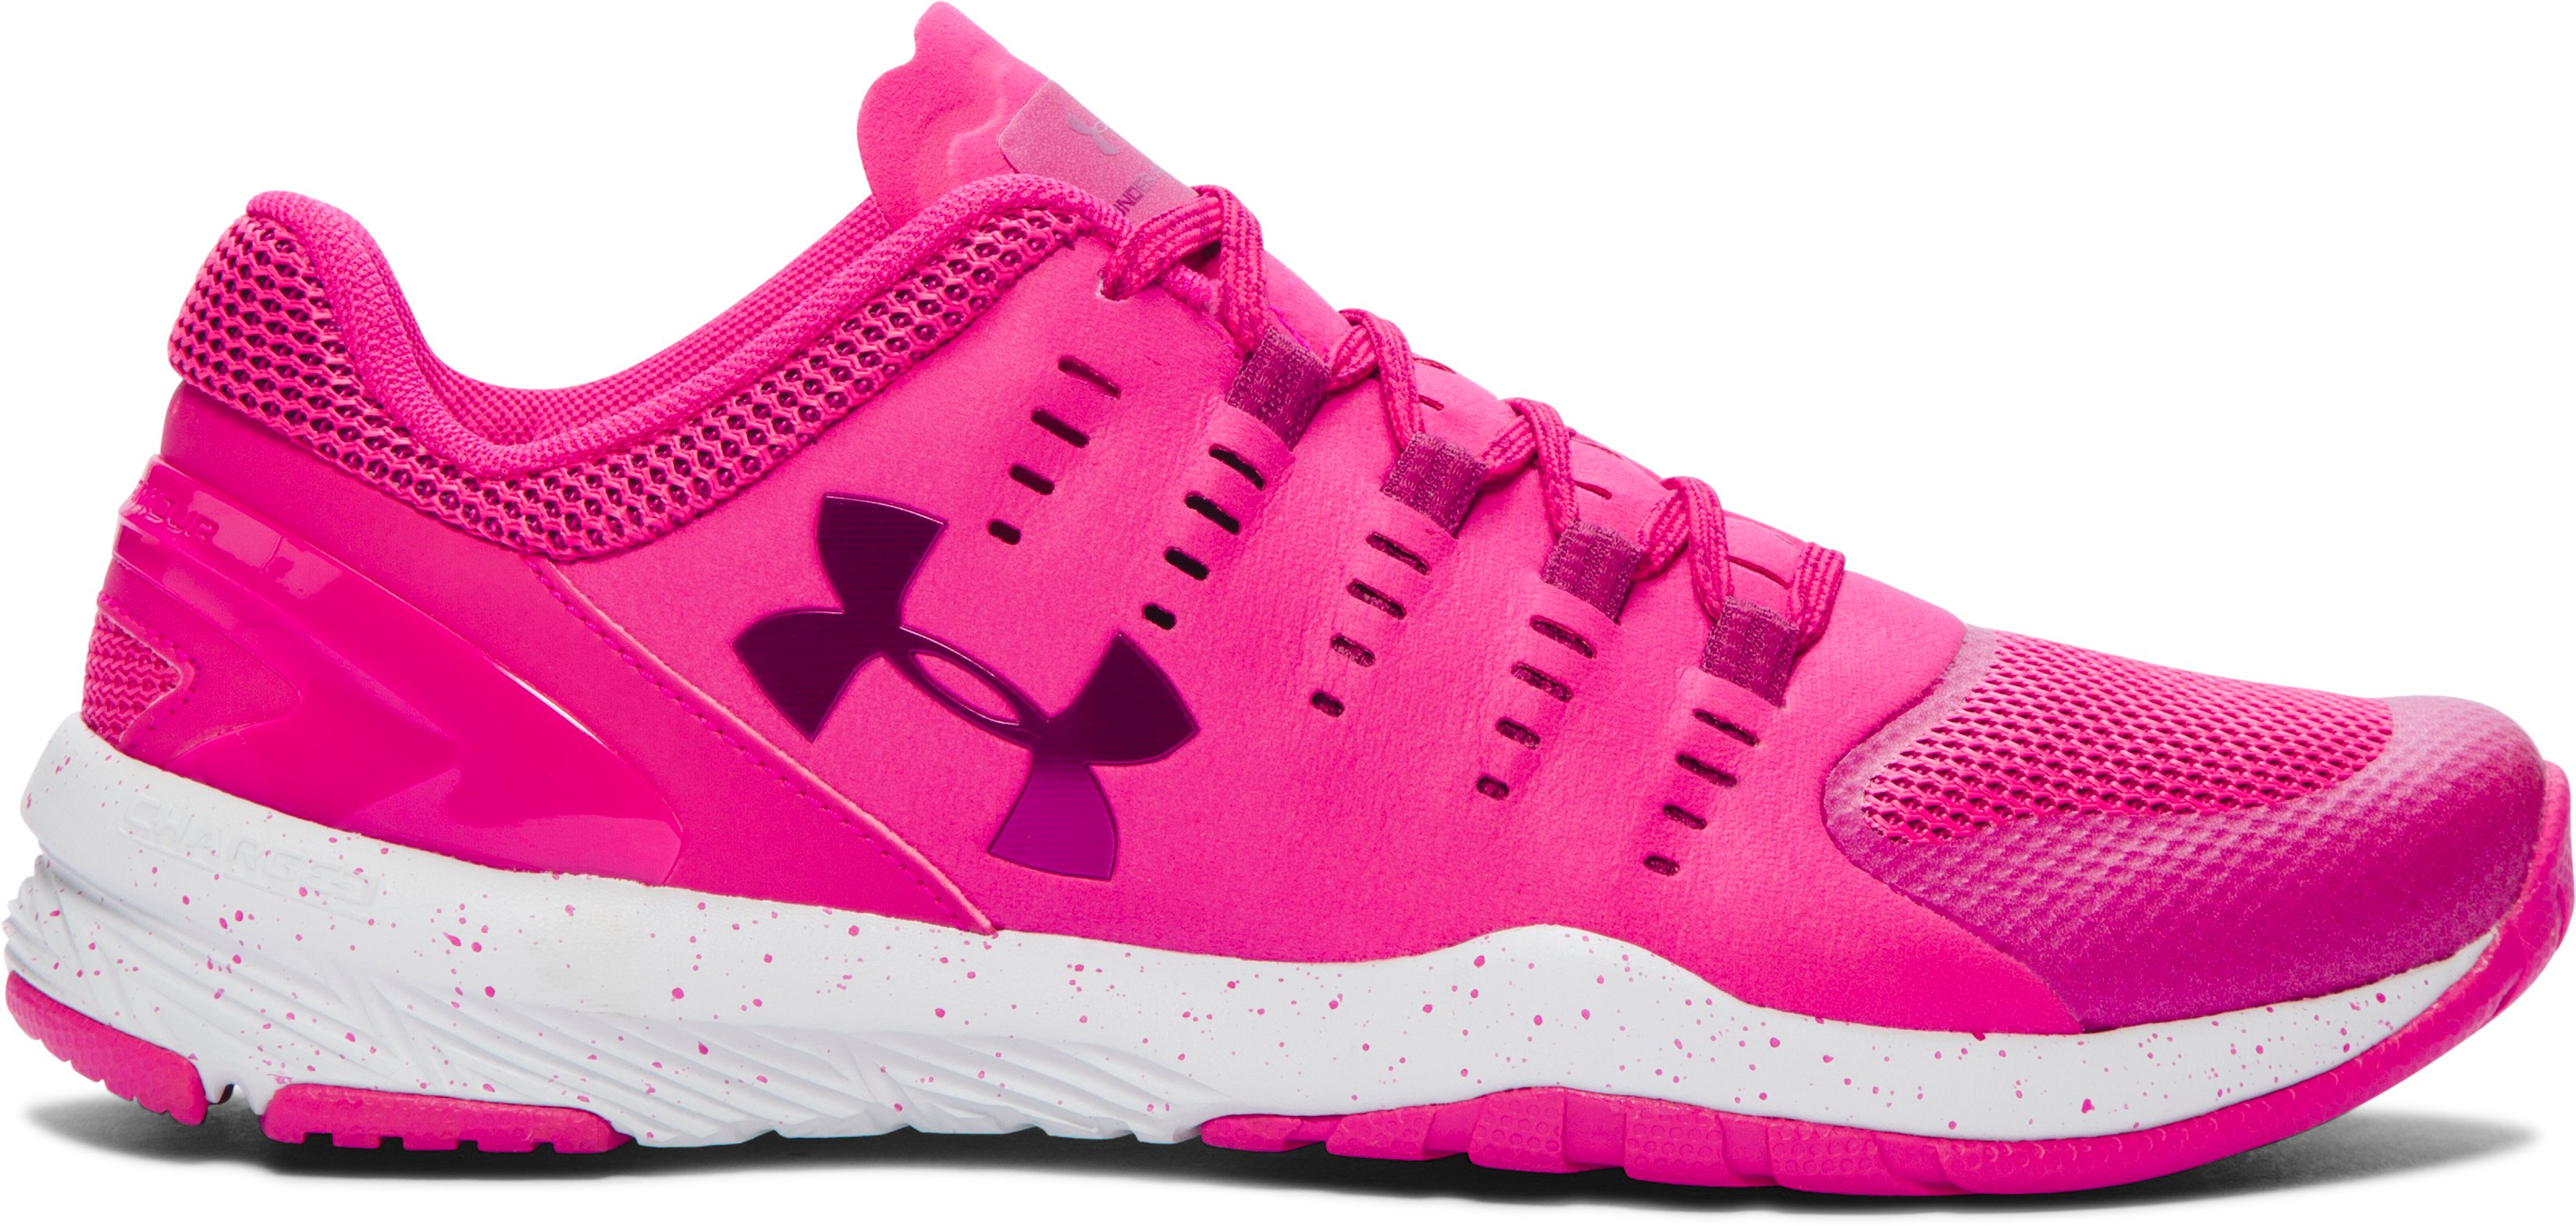 Women's UA Charged Stunner EXP Training Shoes, Tropic Pink, undefined